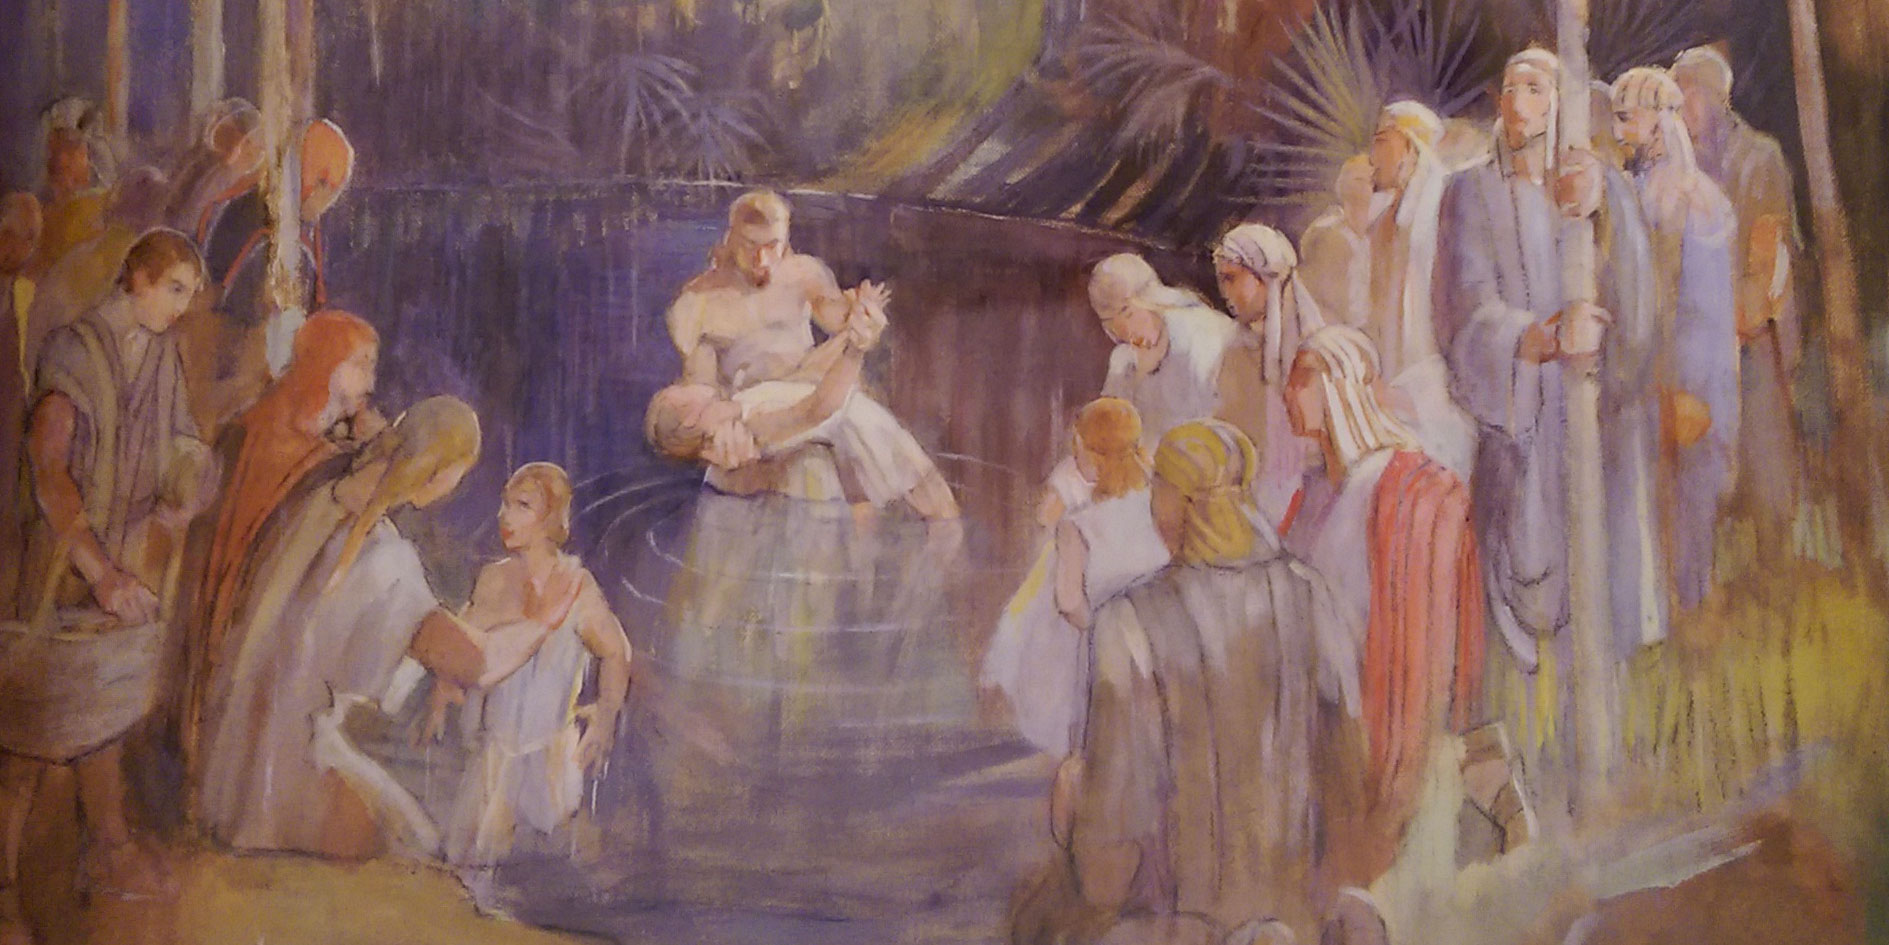 The priesthood is an integal part of Nephite life even though Lehi and his sons were not Levites. Image by Minerva Teichert